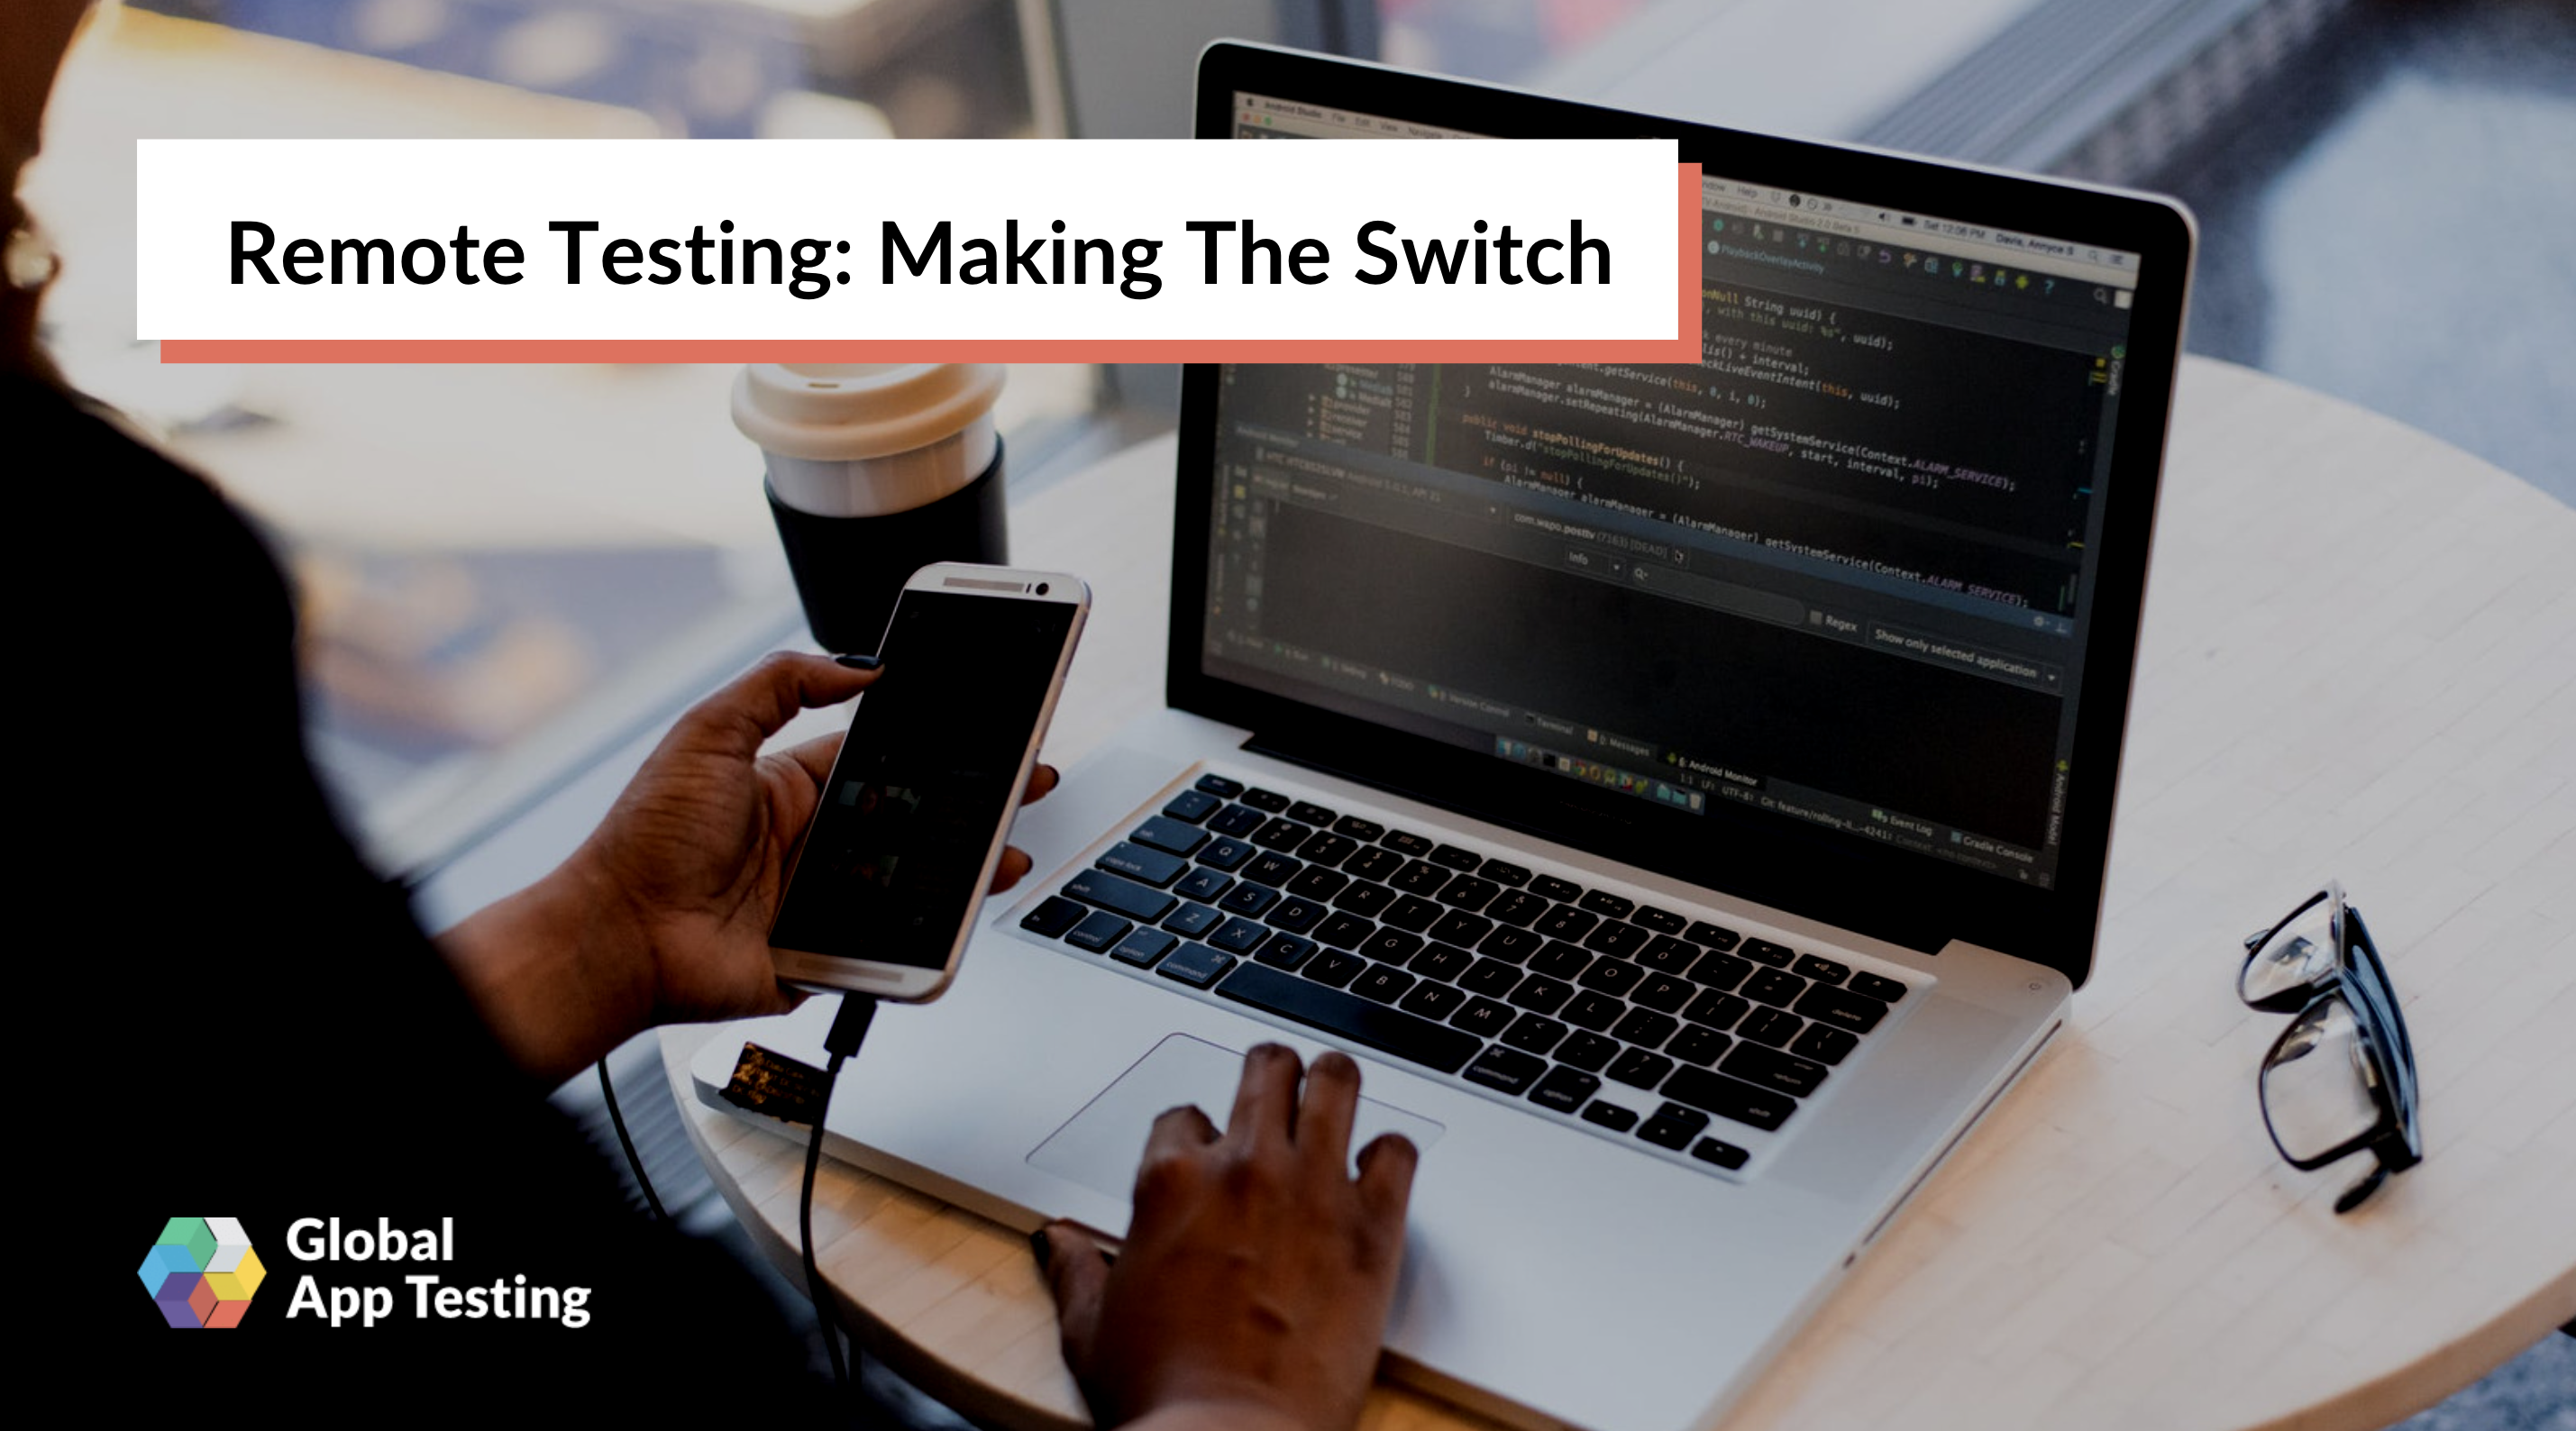 Remote Testing: Making The Switch